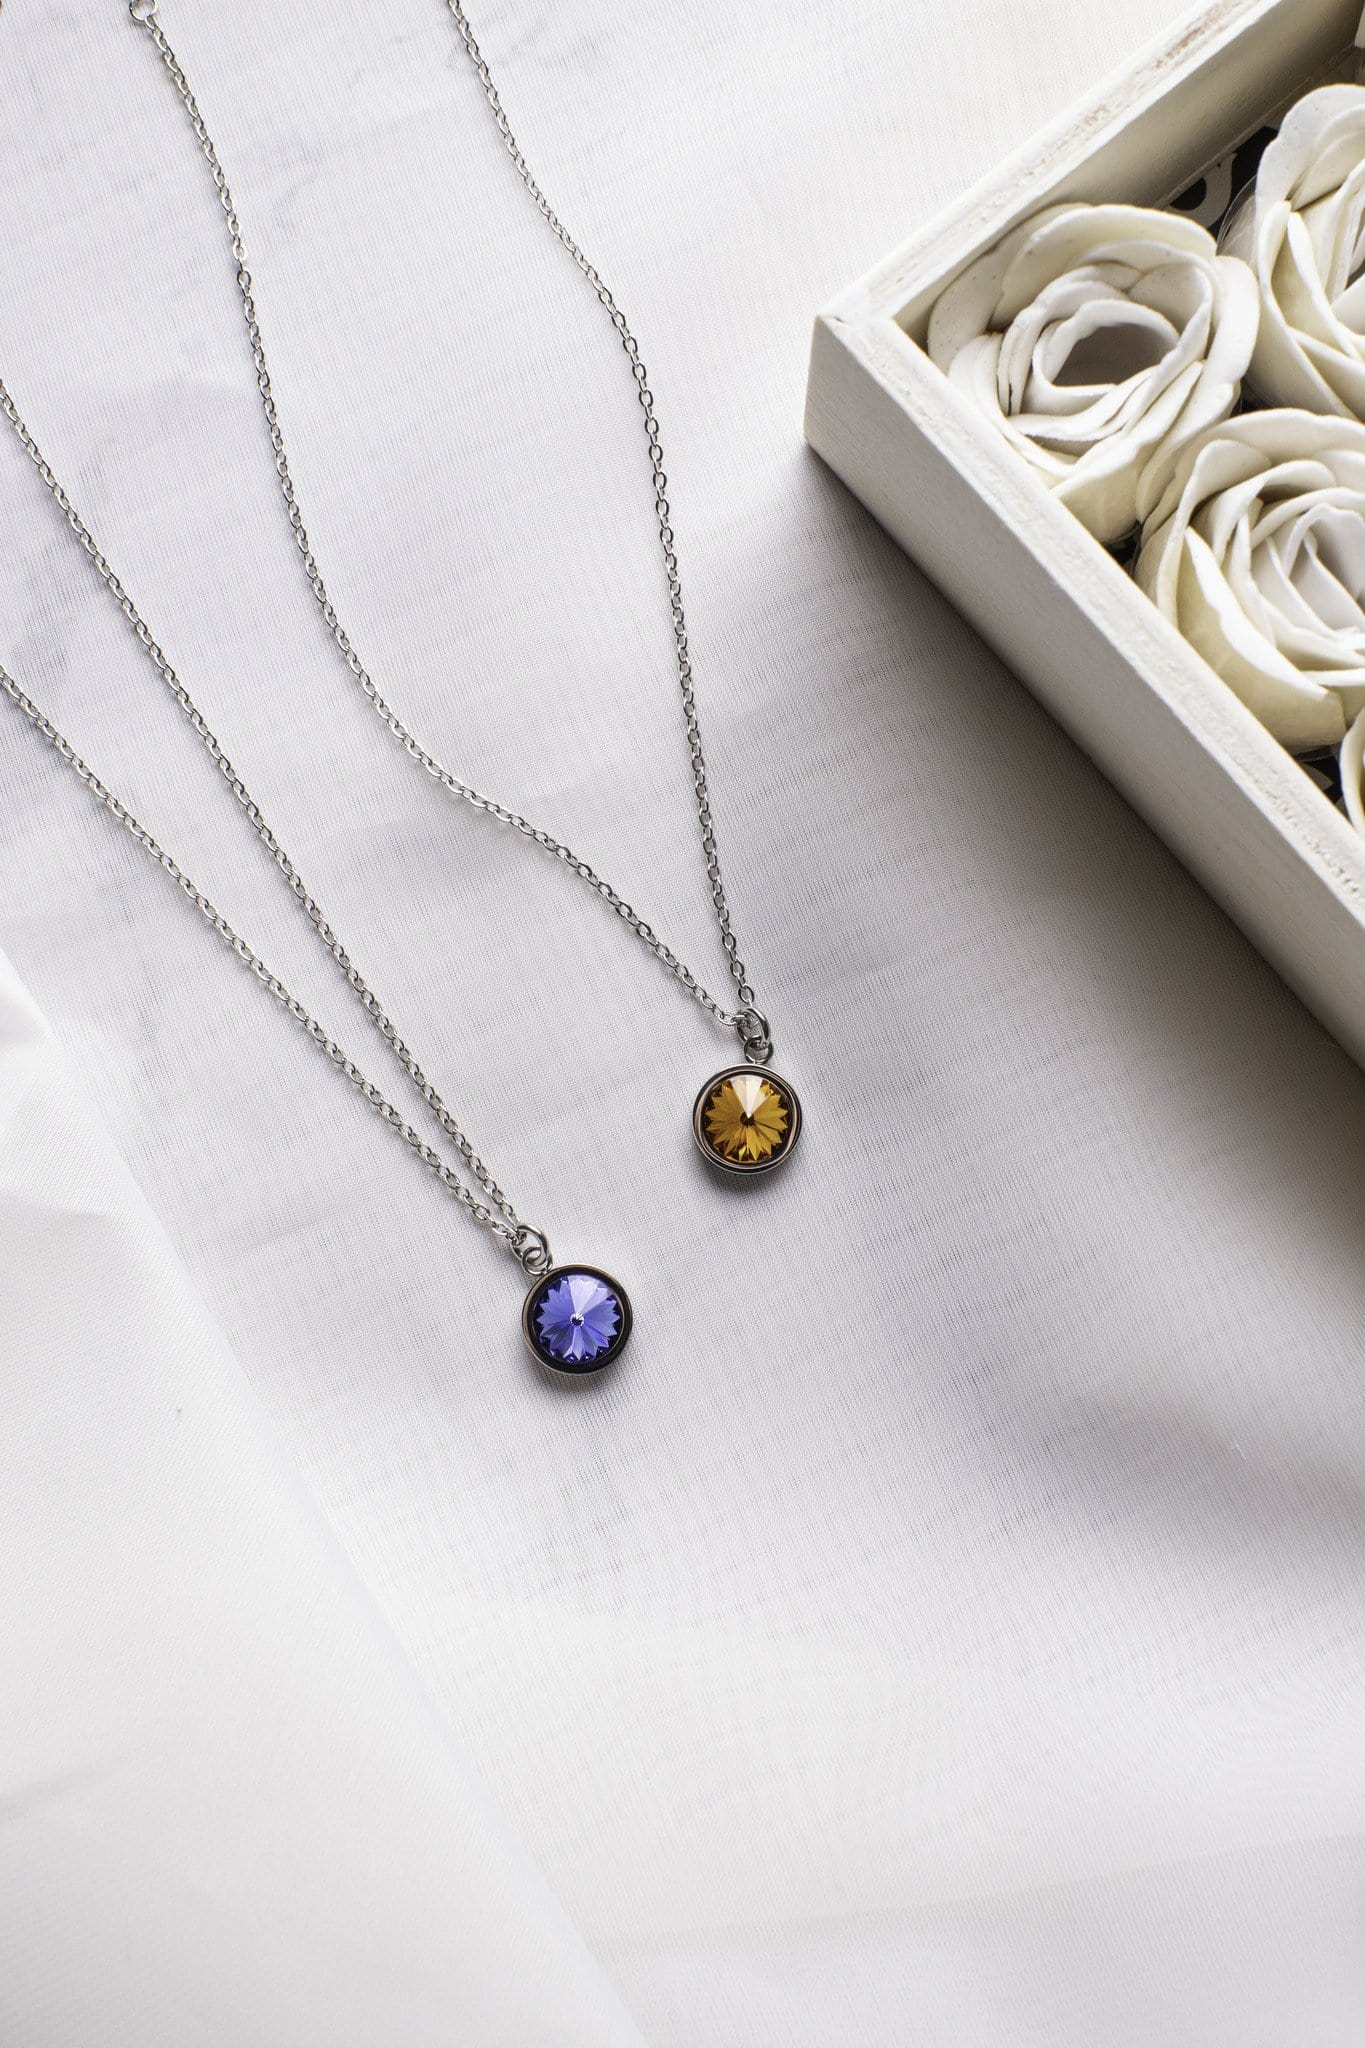 The Birthstone Necklace